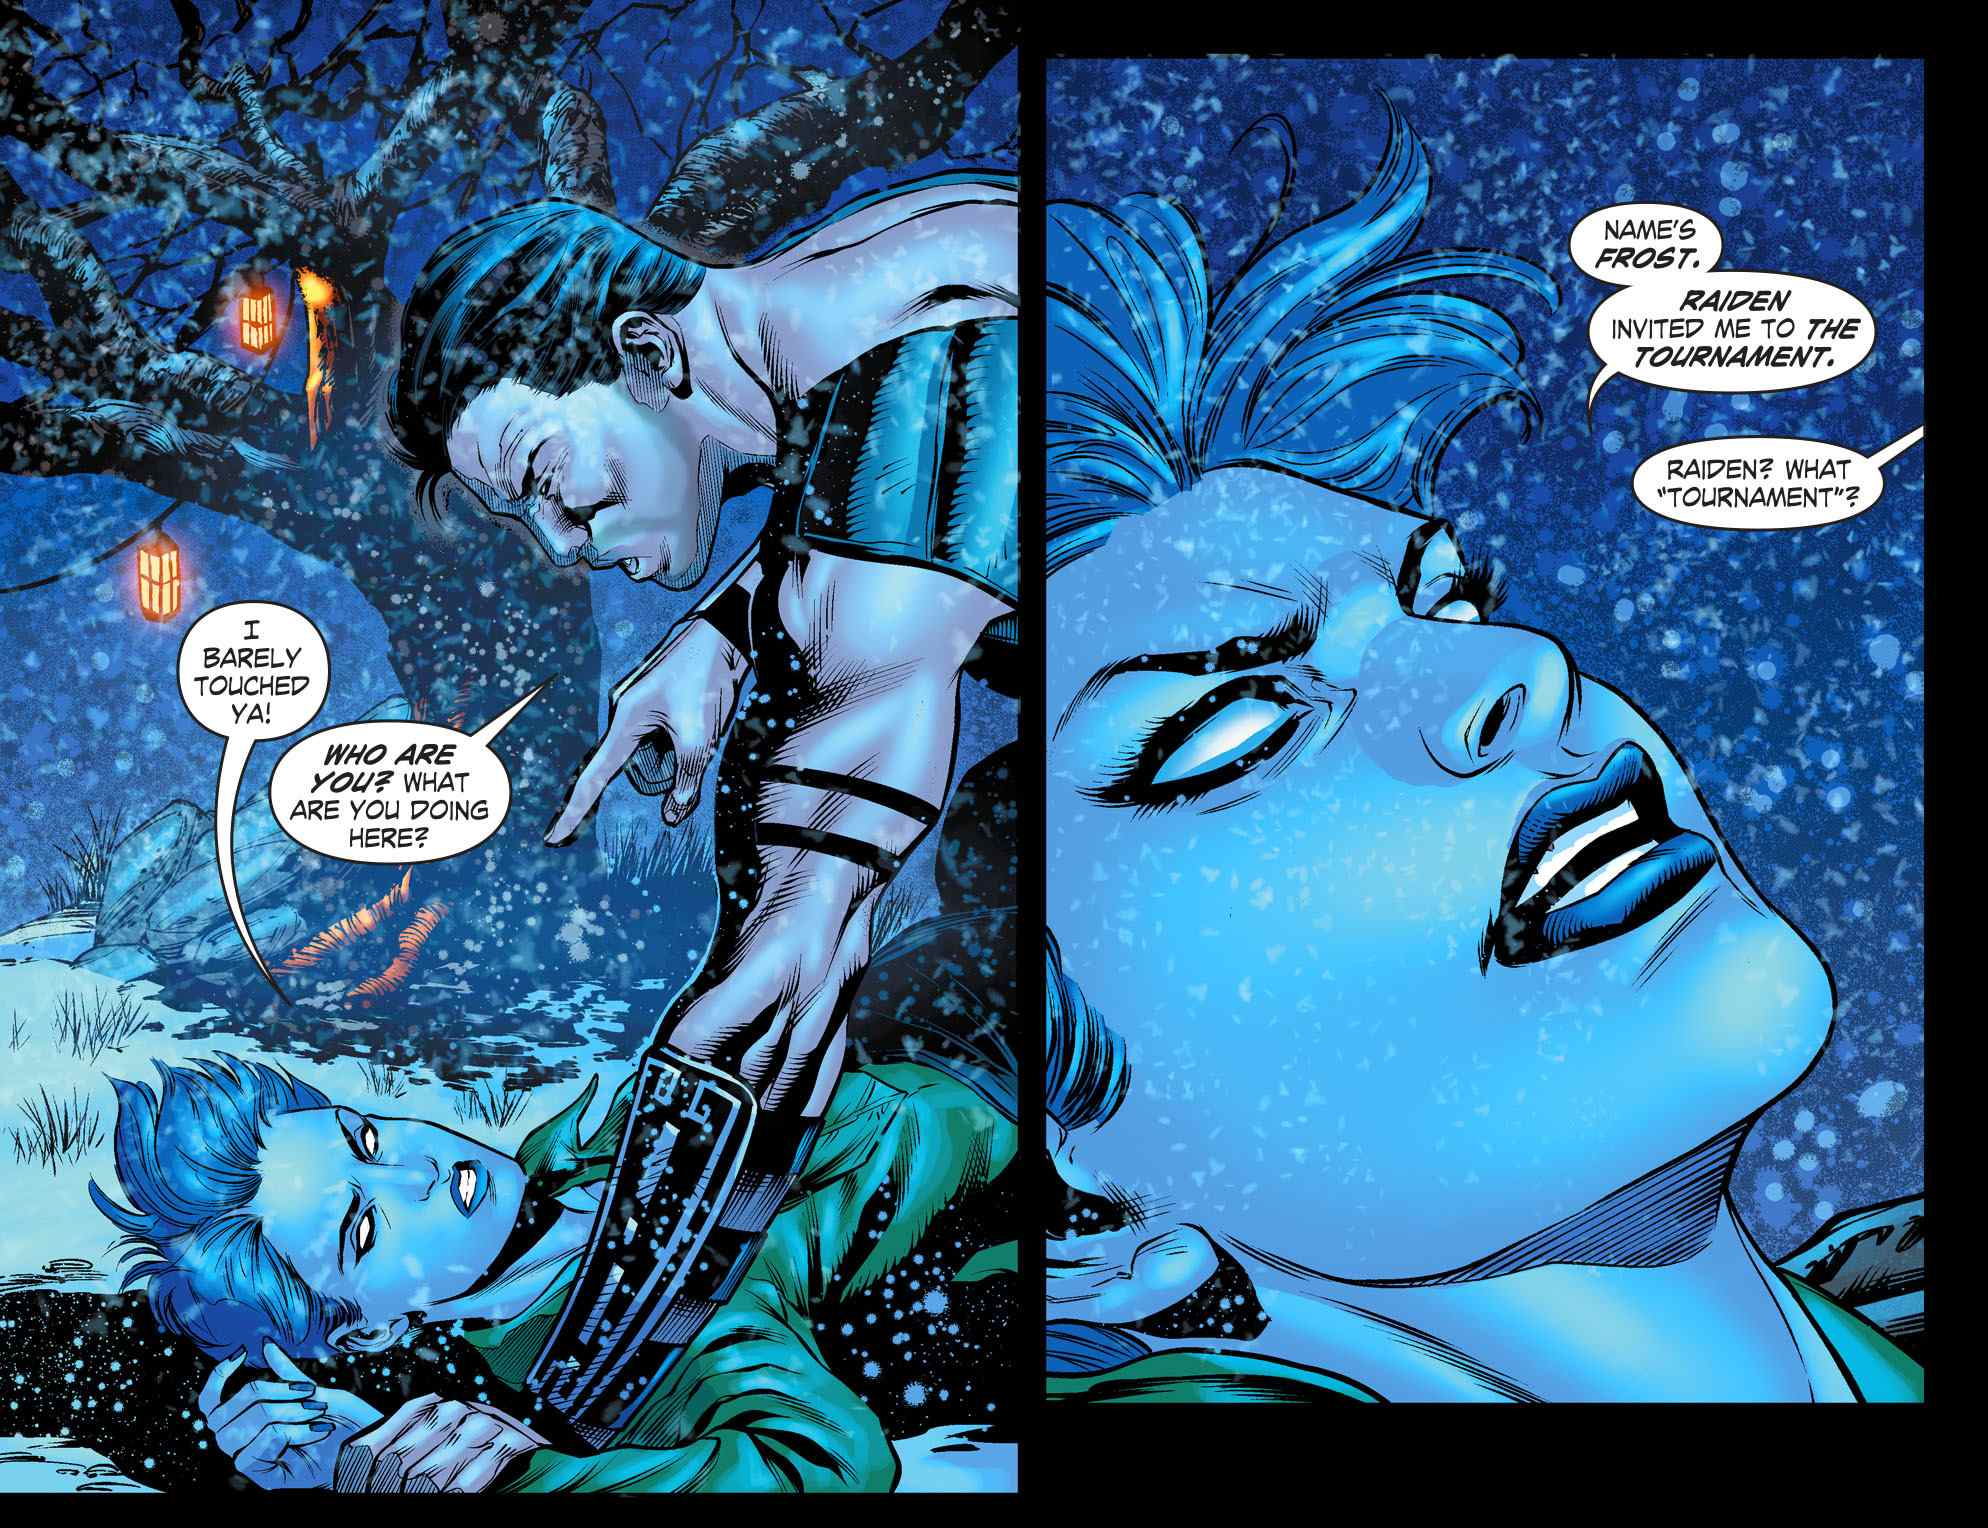 Frost also appeared in the Mortal Kombat X comics.